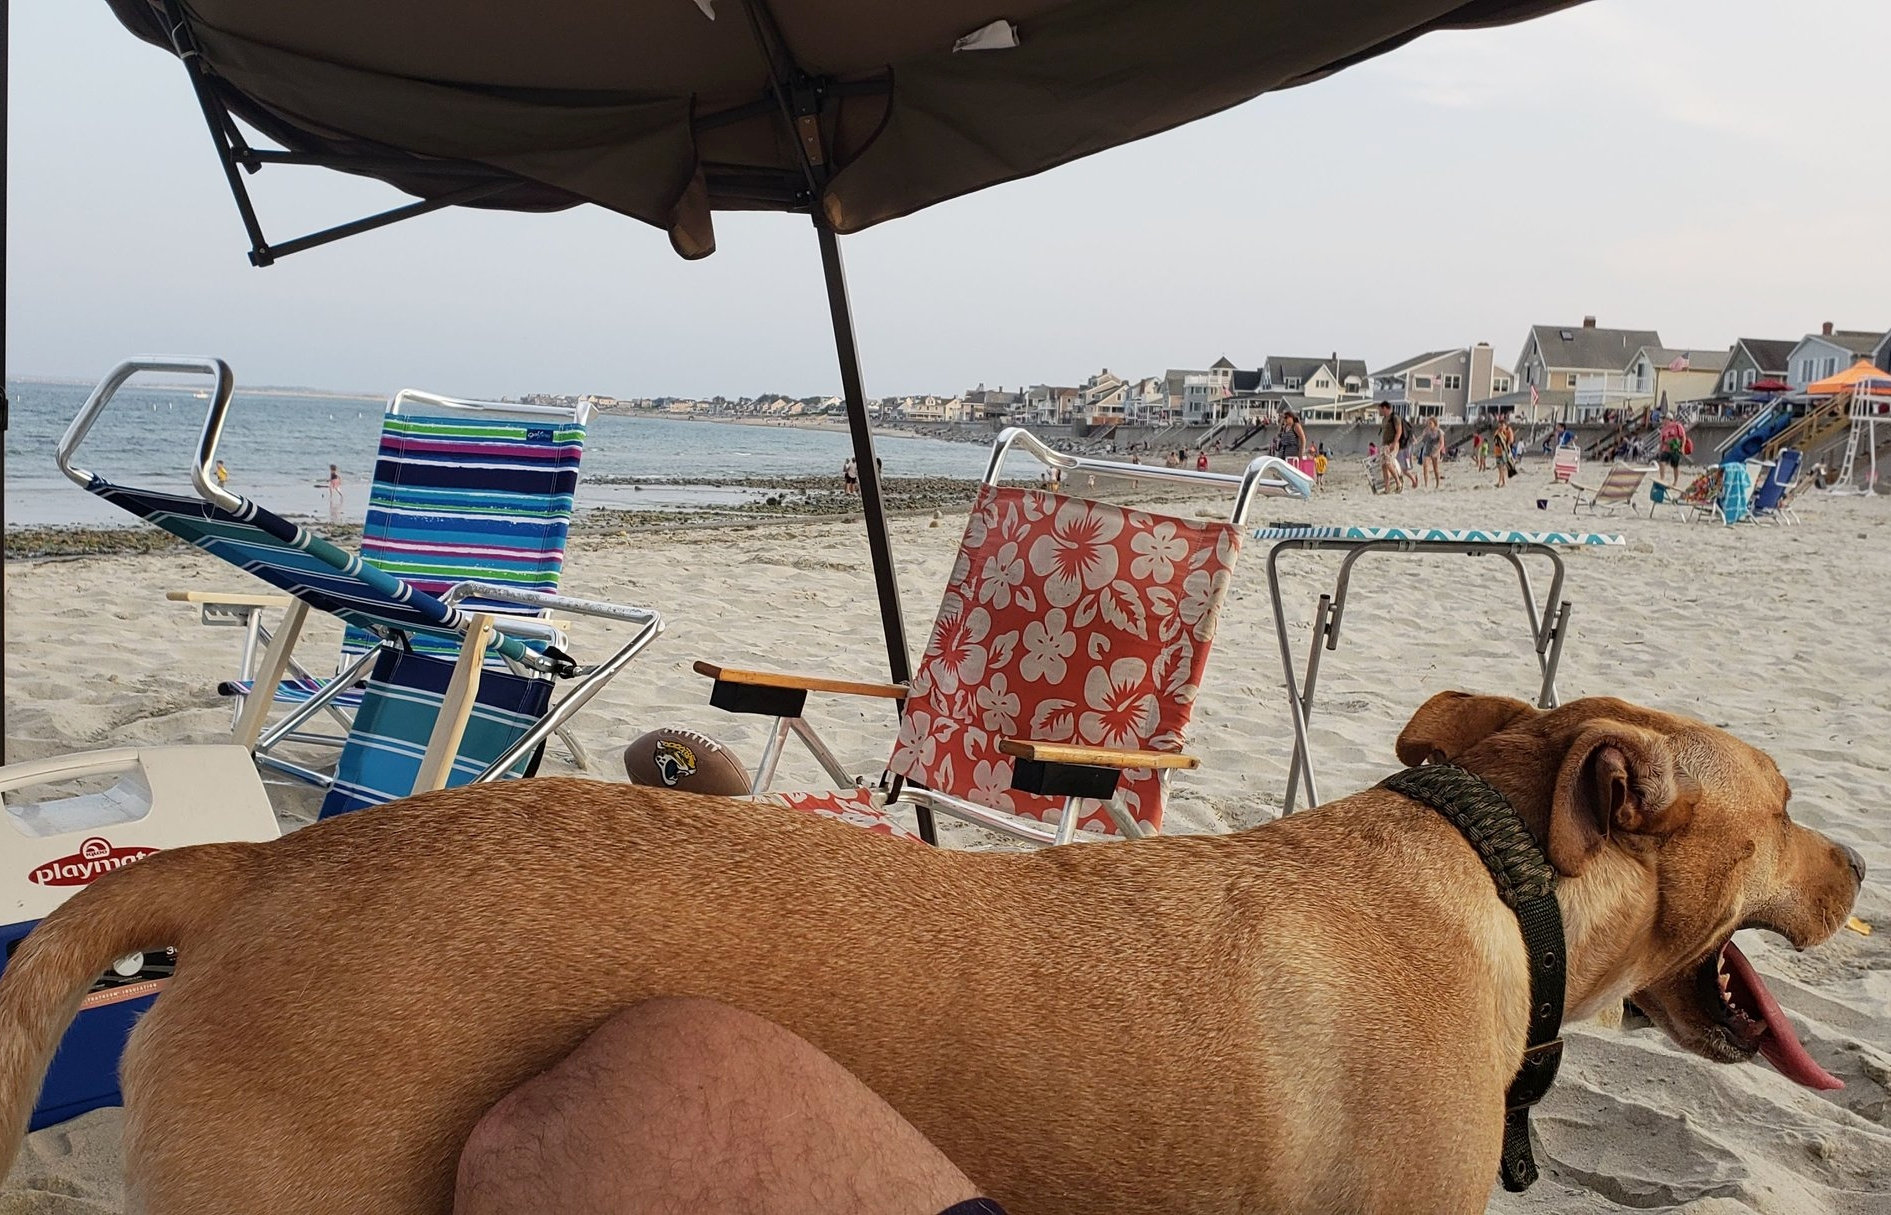 Enjoying the beach is a great frugal vacation especially on July 4th